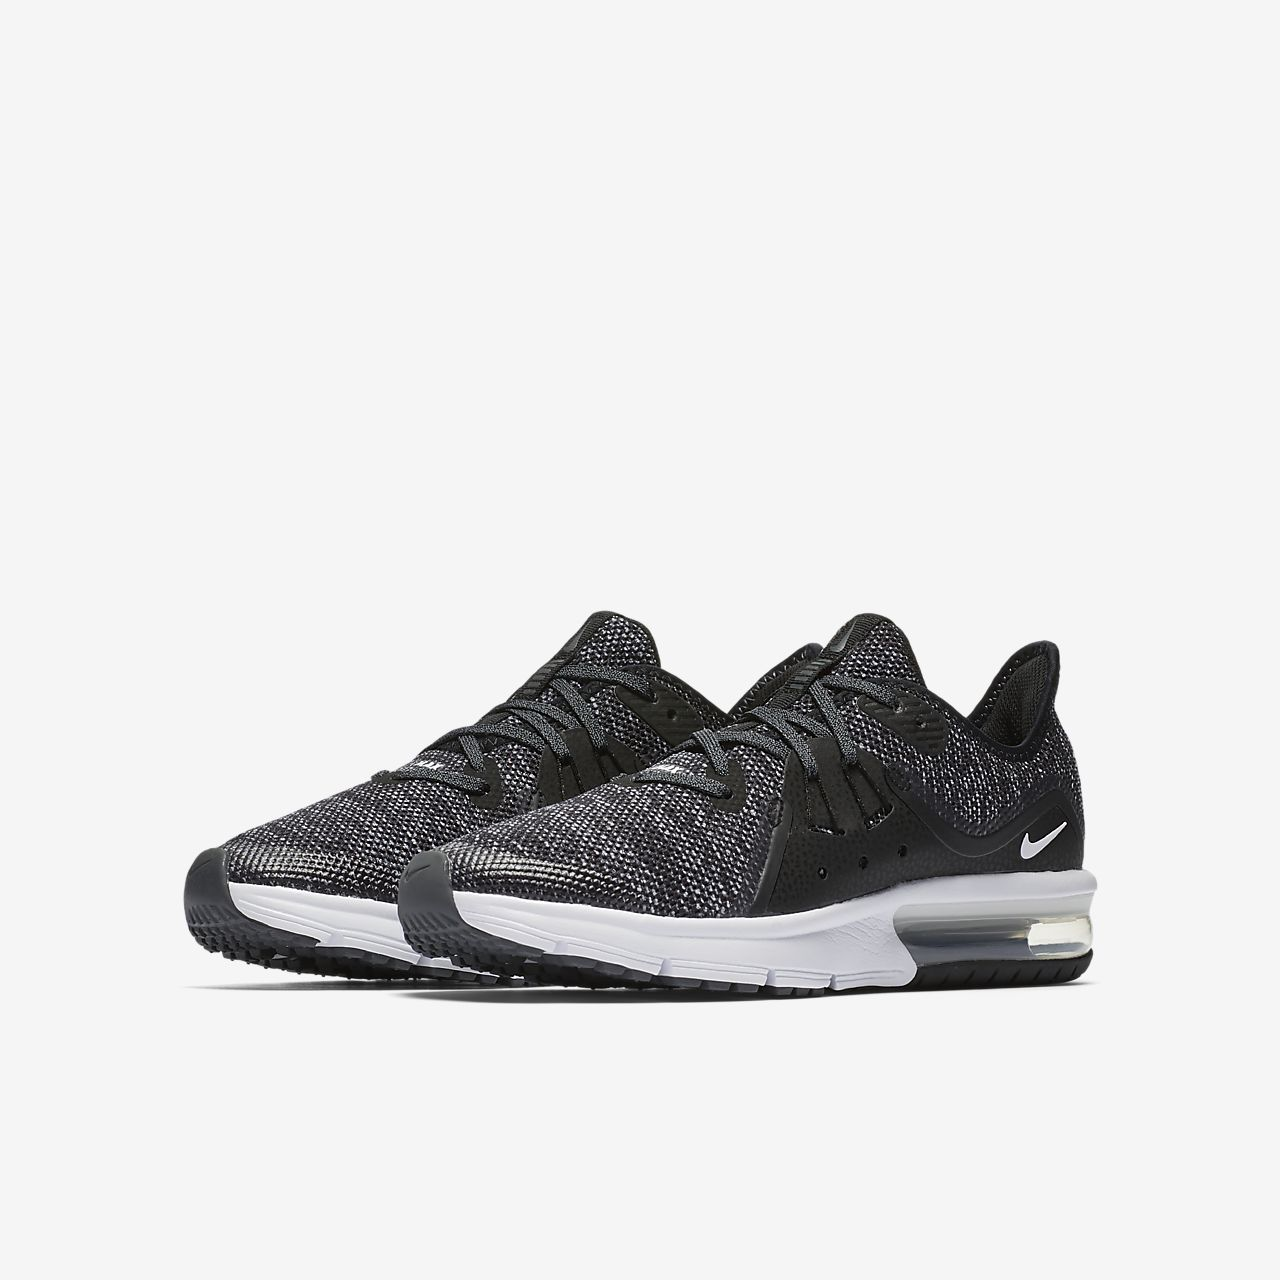 96ef1ab1a5 Nike Air Max Sequent 3 Older Kids' Running Shoe. Nike.com CZ